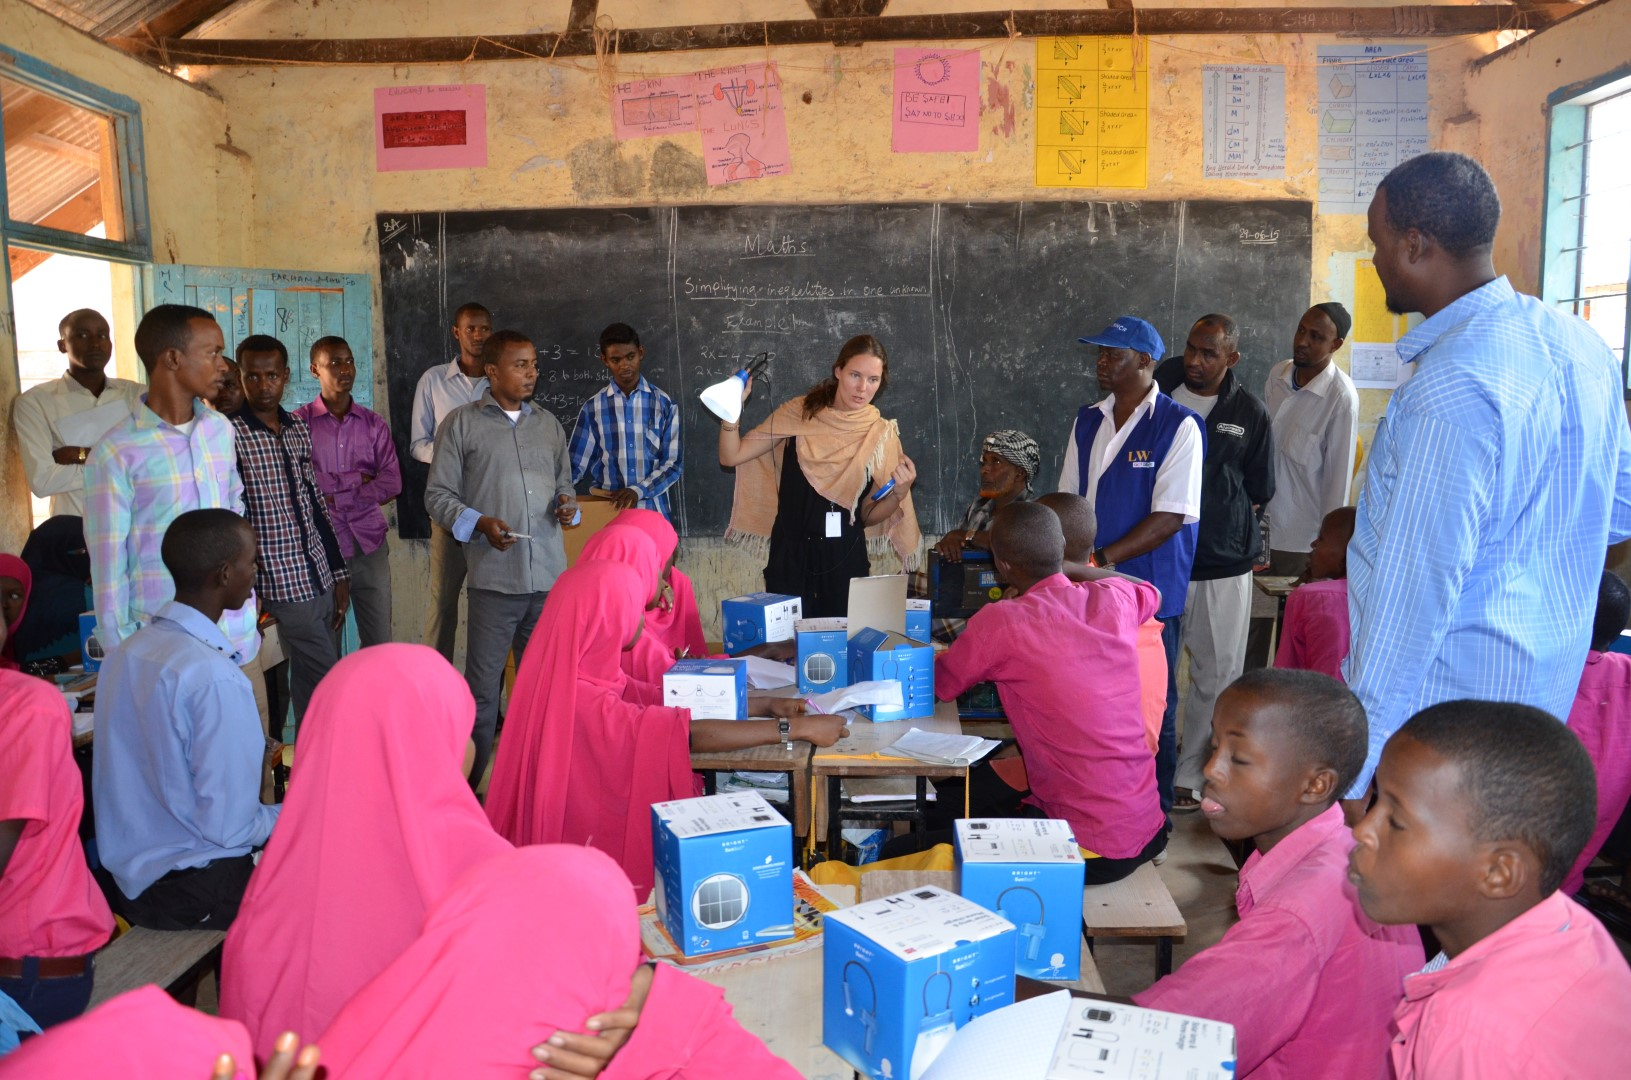 Field trips and user centric studies are important components in gaining understanding of the needs in the humanitarian and development market.Innovation Norway brought companies to Dadaab refugee camp, here with Bright Products' solar lamp. Assad, UNHCR Kenya